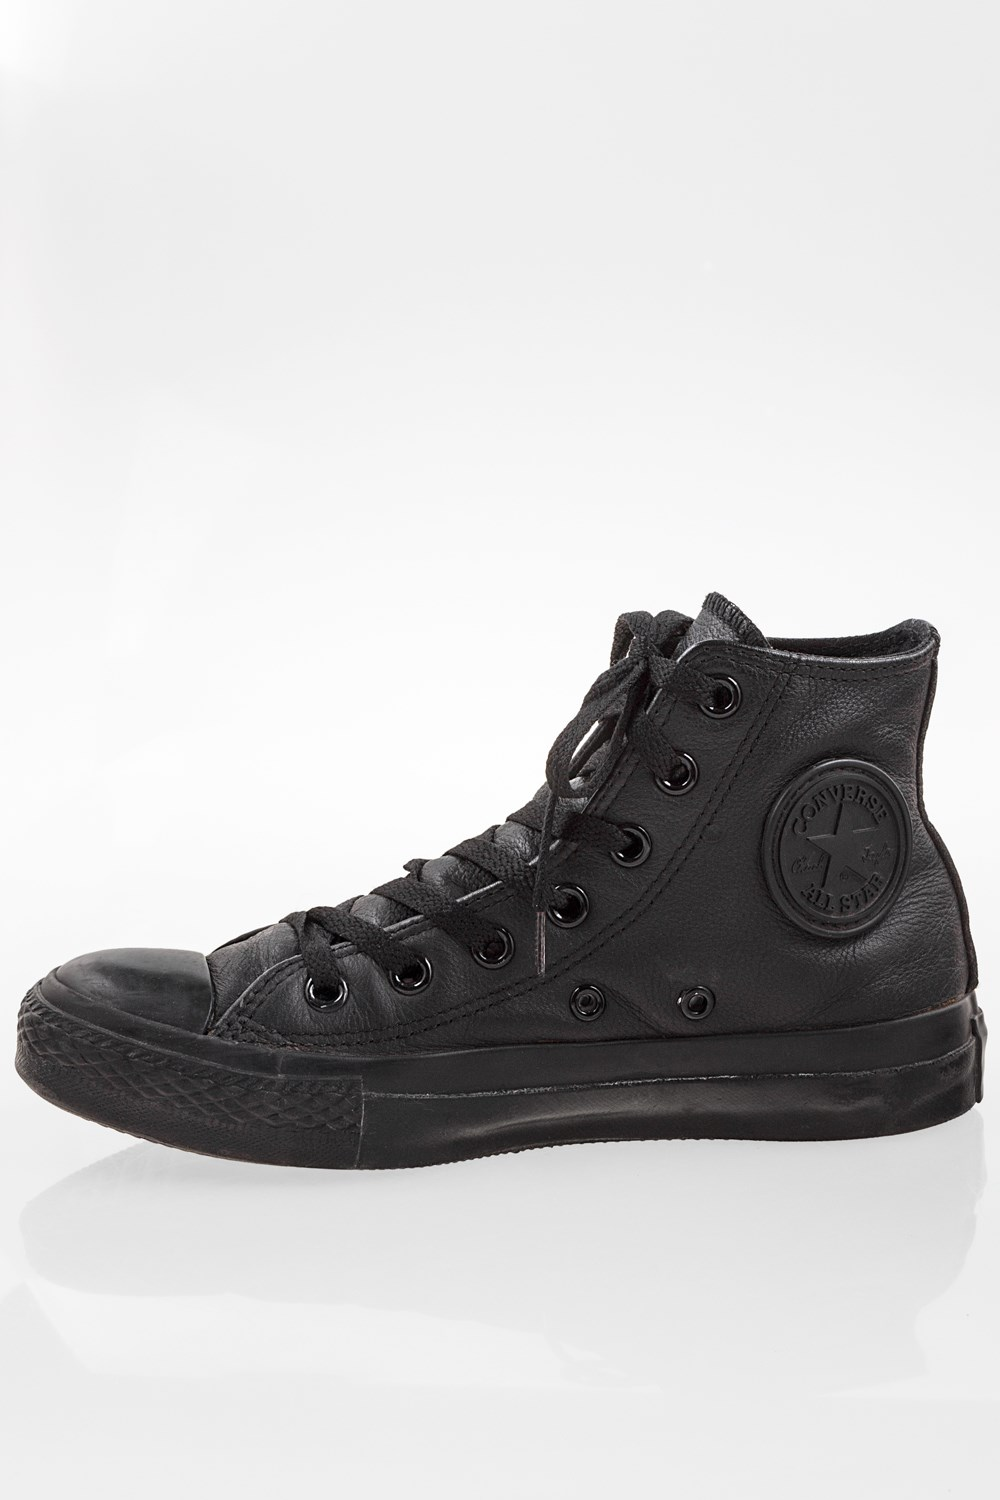 Starbags Products, Shoes, Trainers, Black Chuck Taylor All Star Mono Leather High Top Sneakers Size: 37 Fit: True to size, Starbags.gr